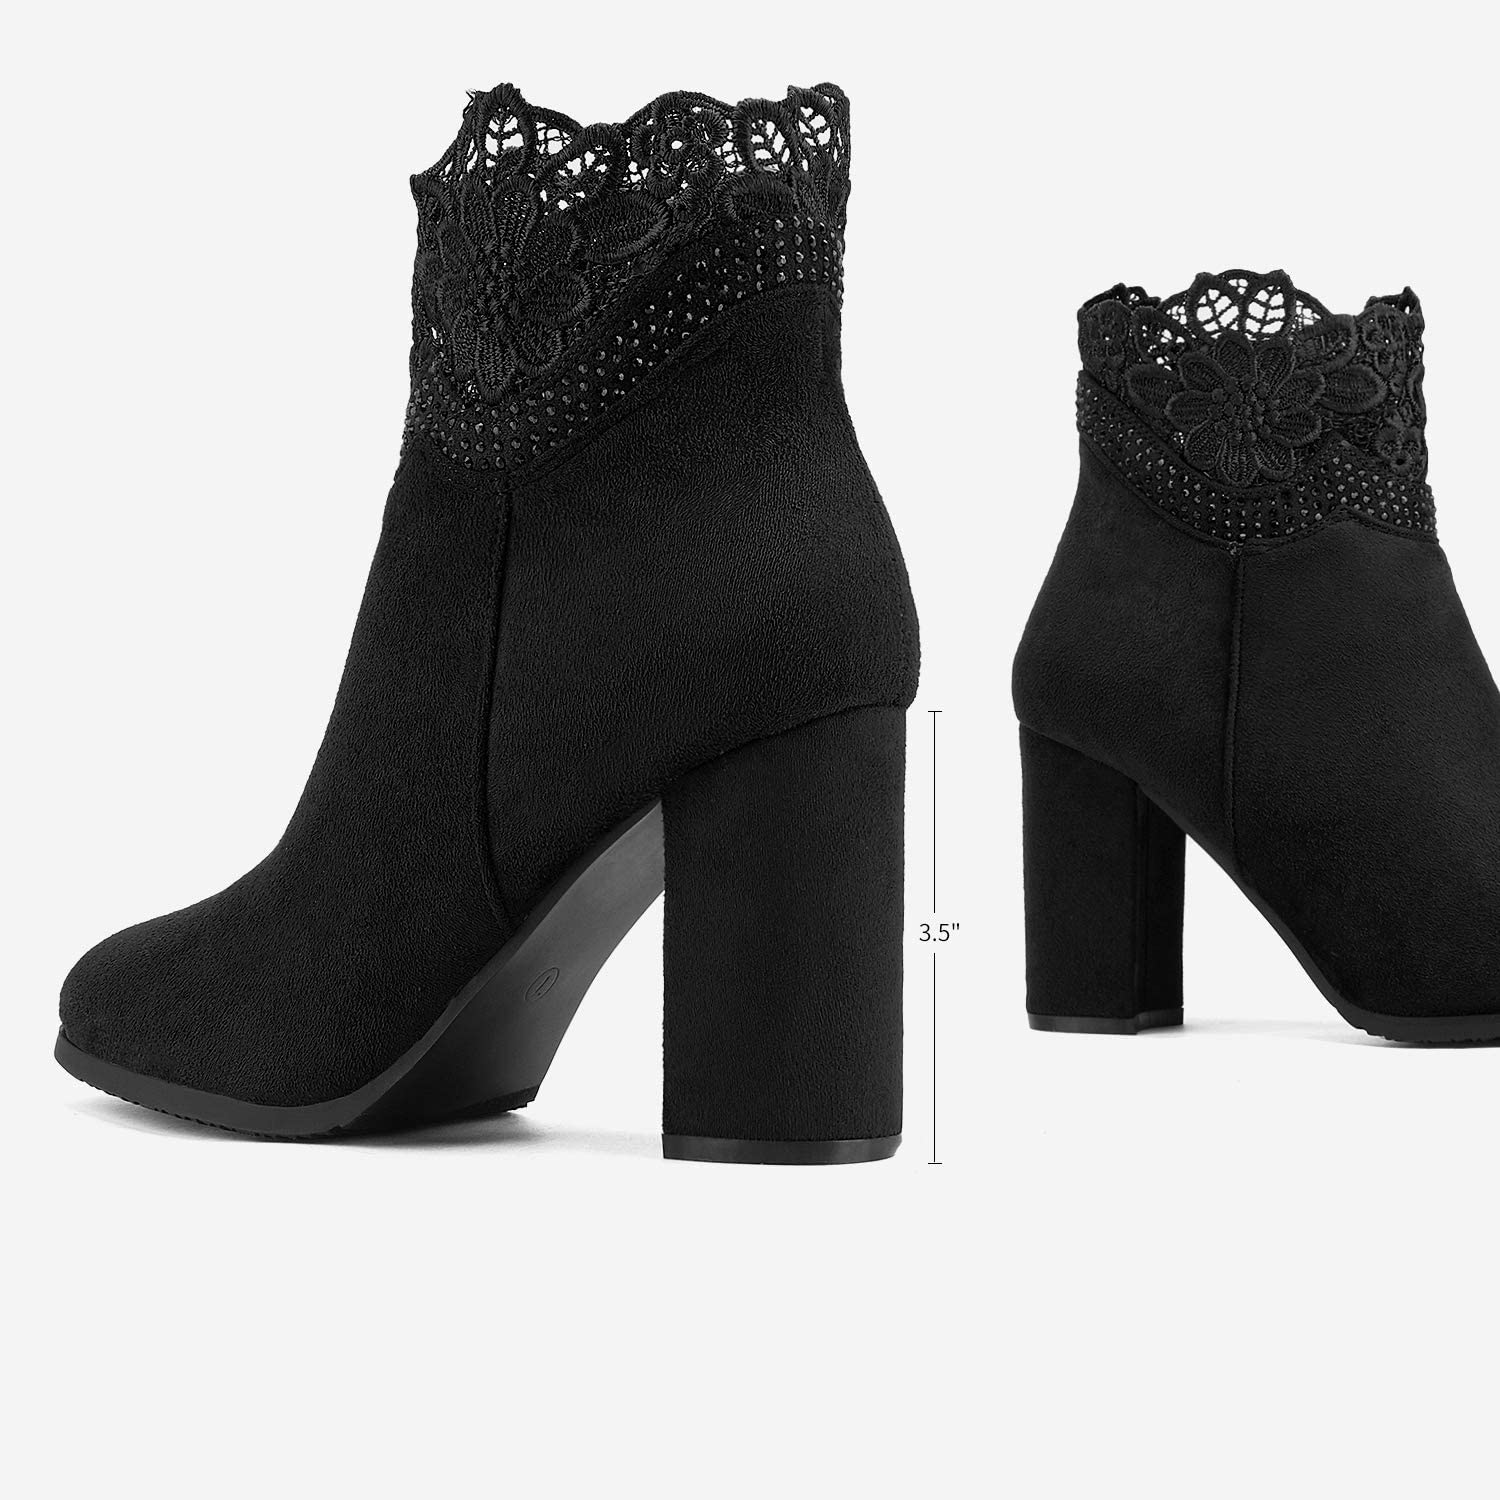 DREAM PAIRS Womens Pointed Toe Stiletto High Heel Ankle Booties